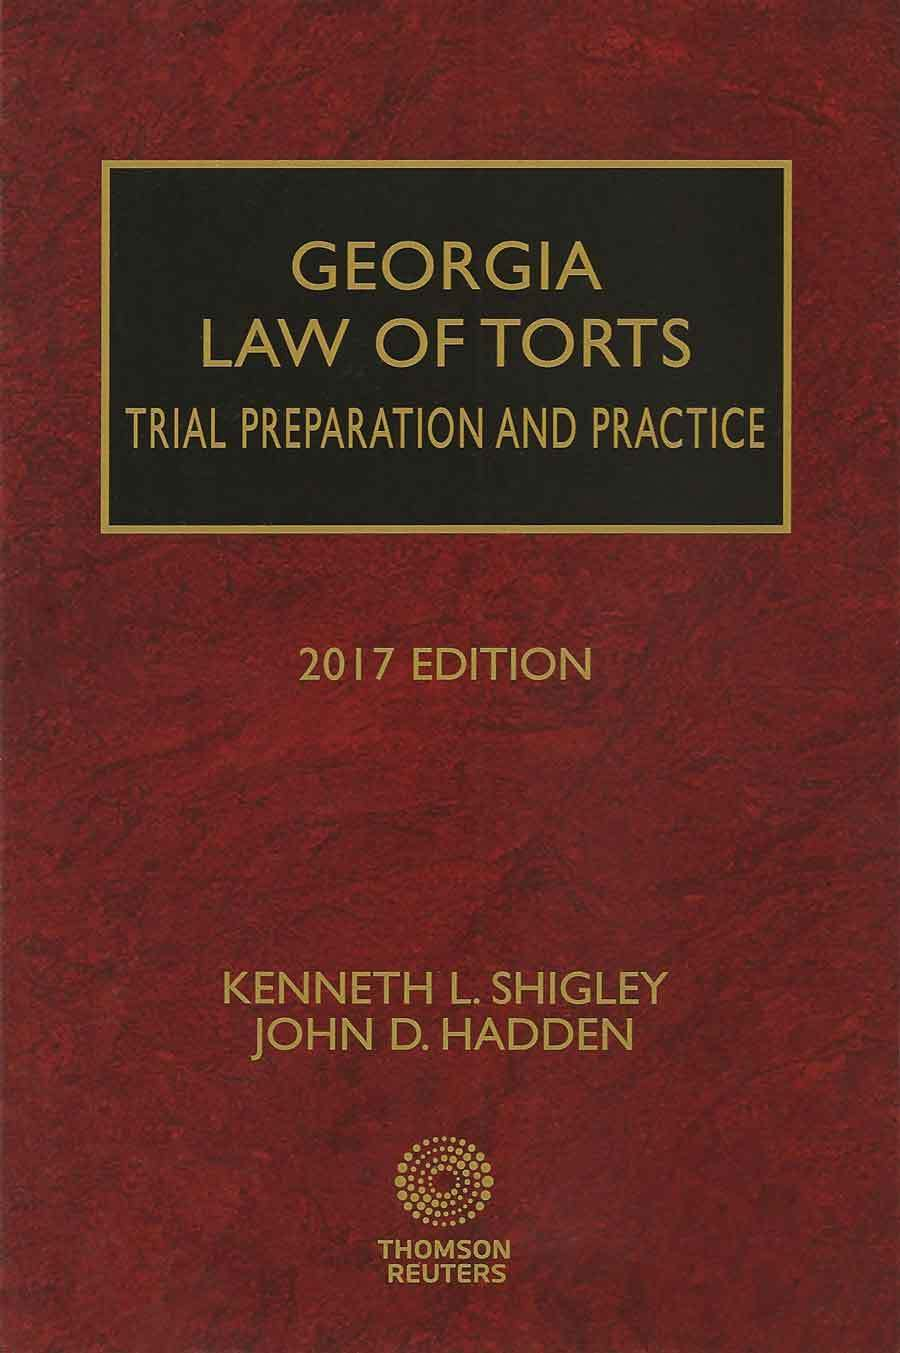 Cover of 2017 edition of Georgia Law of Torts - Trial Preparation and Practice, by John Hadden and Kenneth Shigley